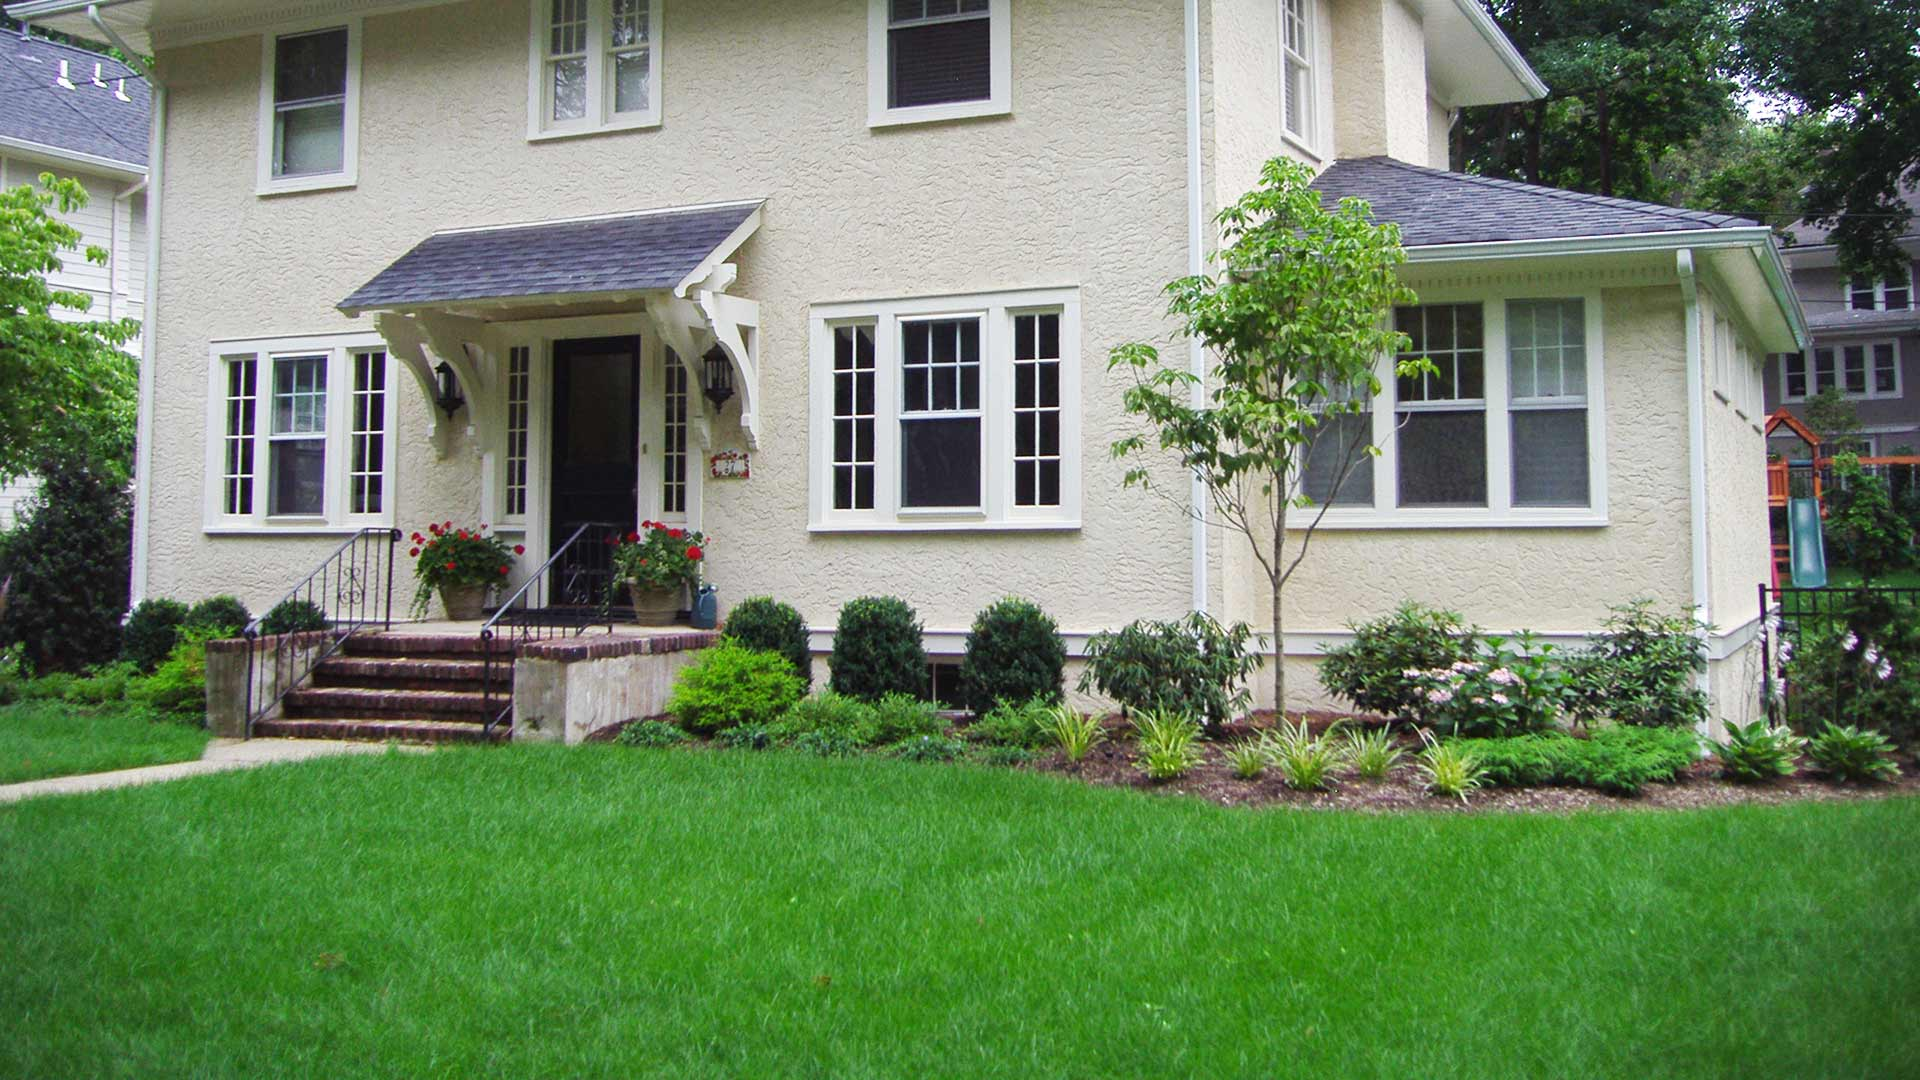 Our customers prefer our lawn services package because it handles multiple aspects of lawn maintenance.